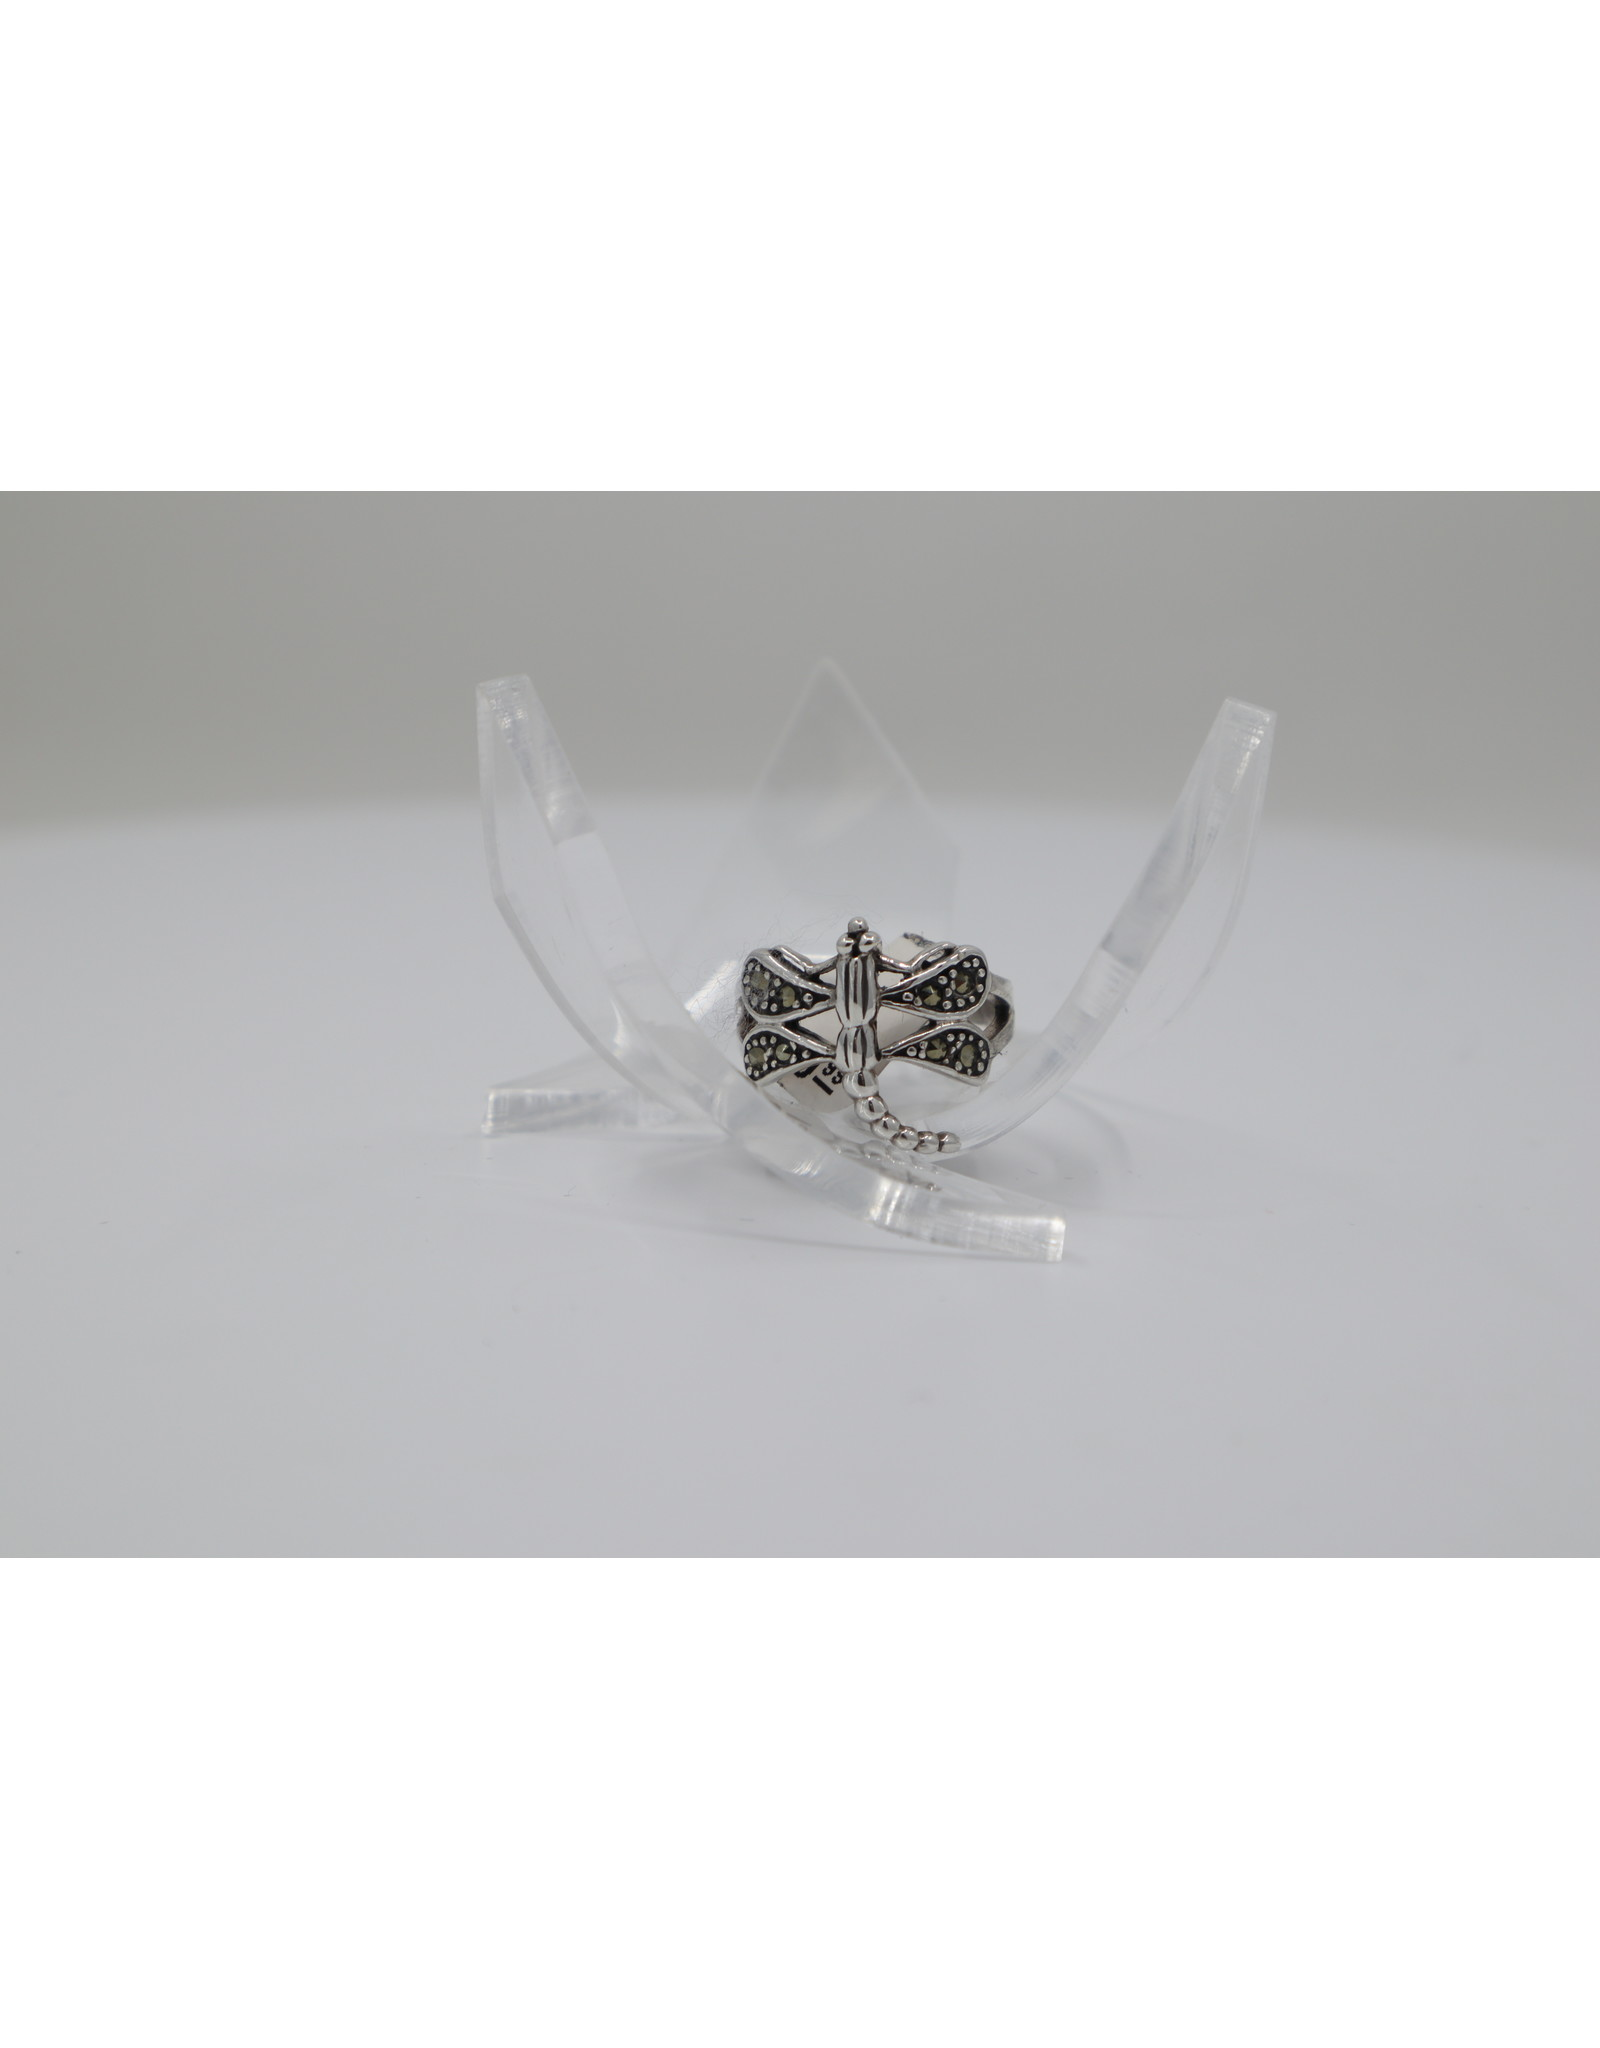 Dragonfly Ring - Size 4.5